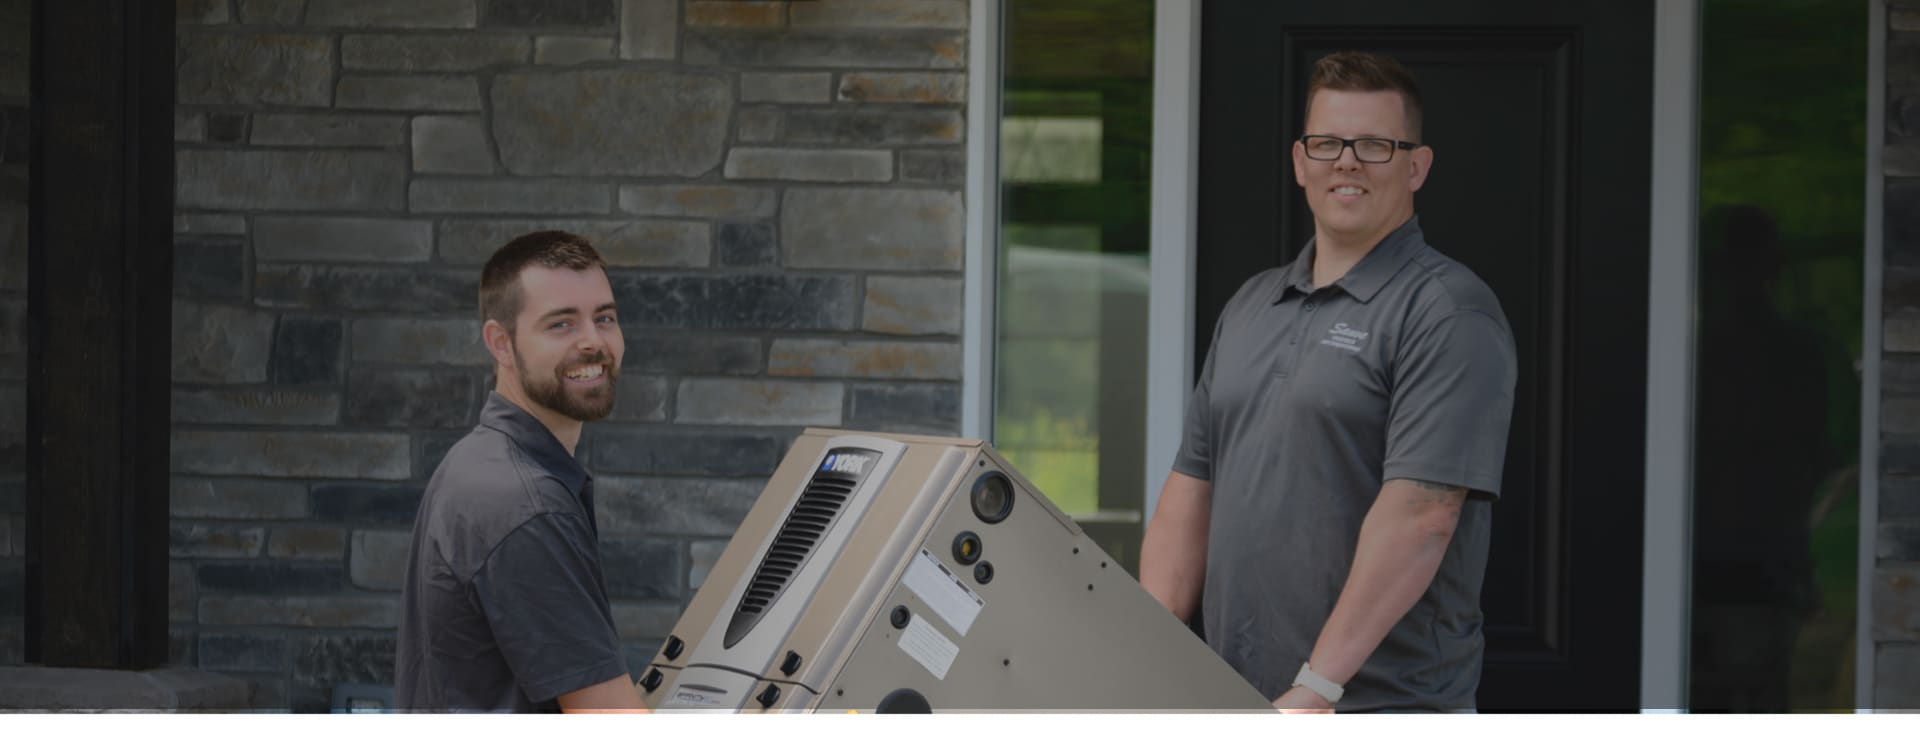 Devin Pettes and Jordan Brown HVAC experts installing a new furnace in an Ottawa home